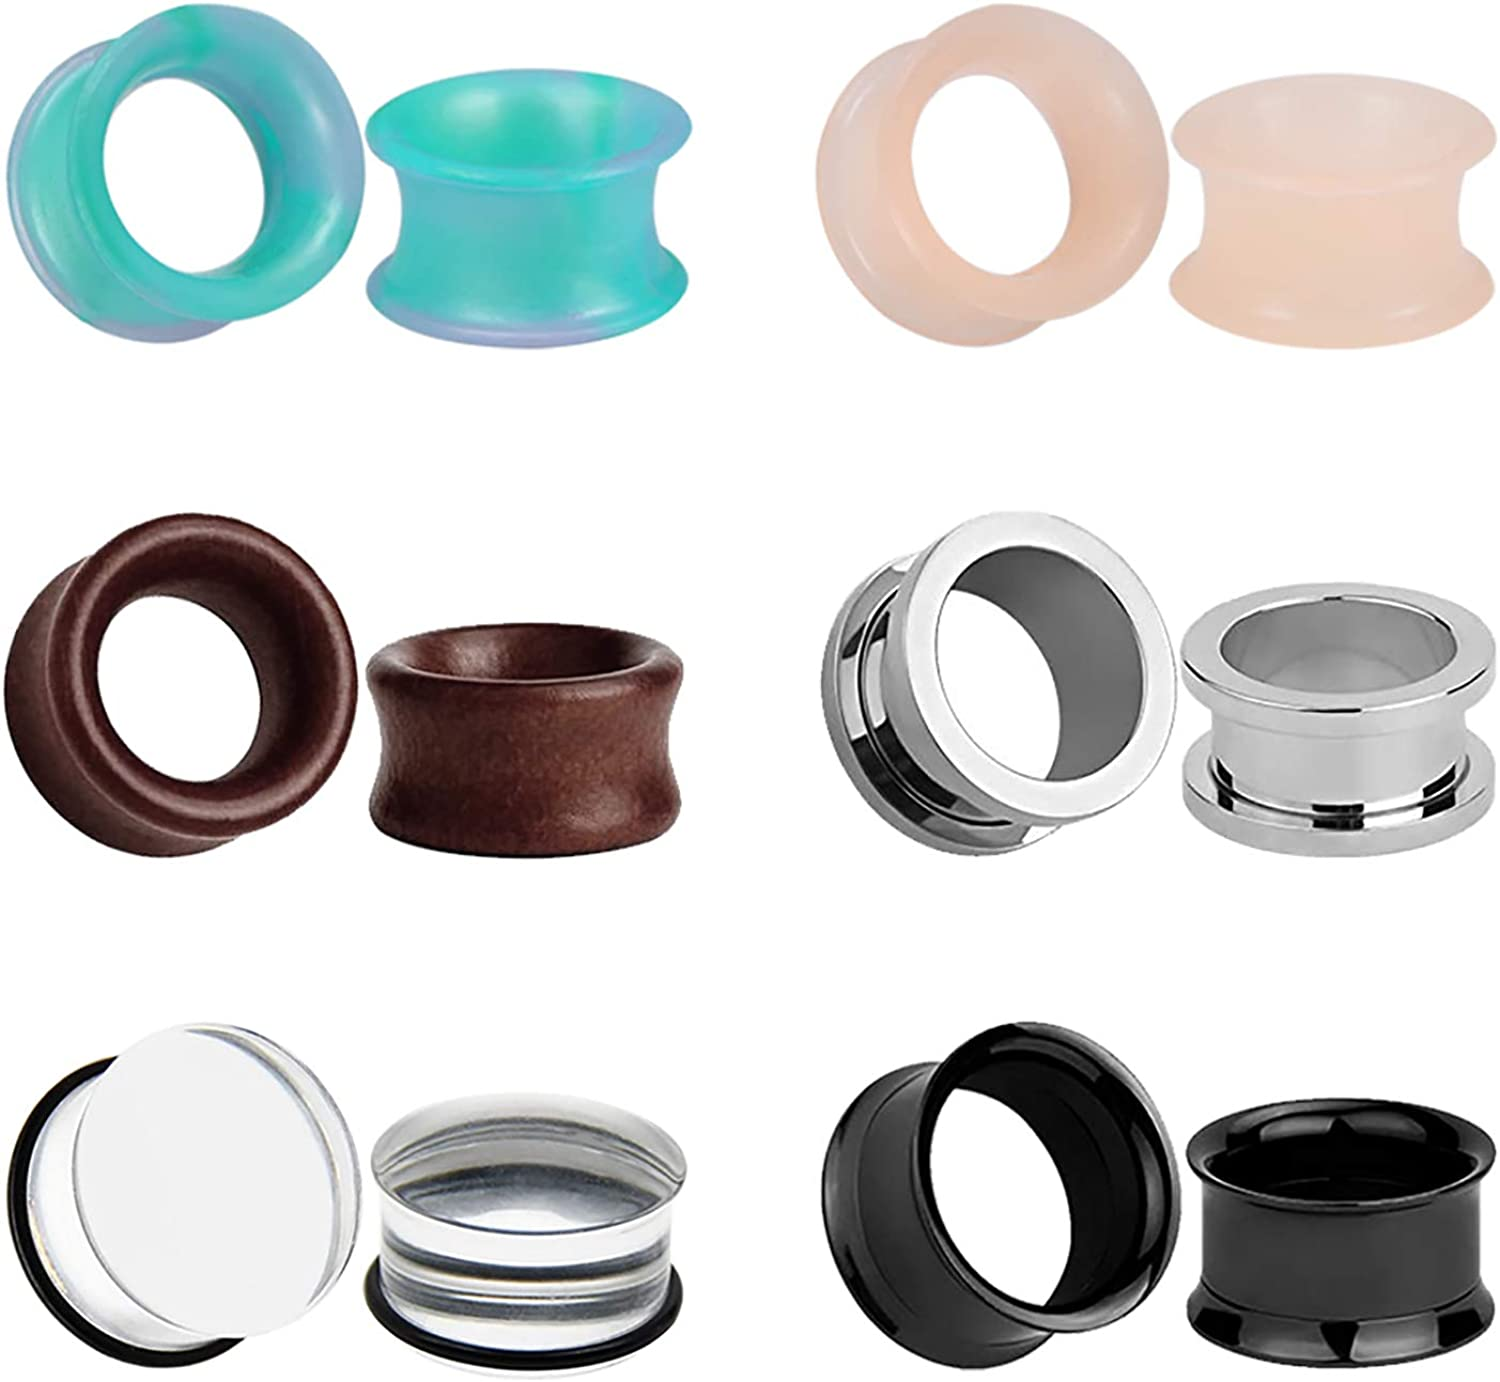 6 Pairs Silicone Time sale Wooden Gauge Austin Mall for Tunnels Gauges Gothic Pl Ears